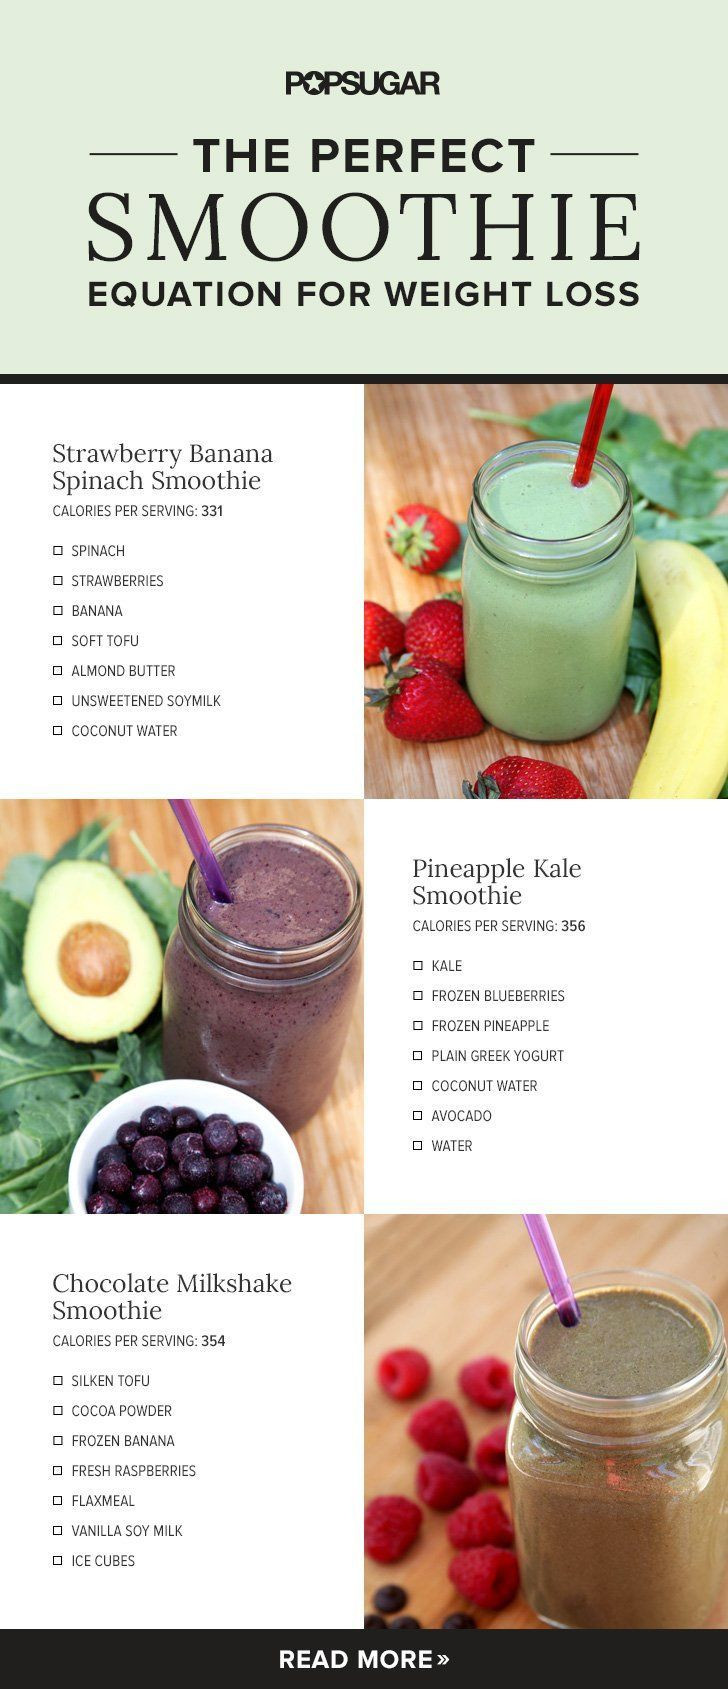 Breakfast Healthy Smoothies  If You Want to Lose Weight This Is the Smoothie Formula